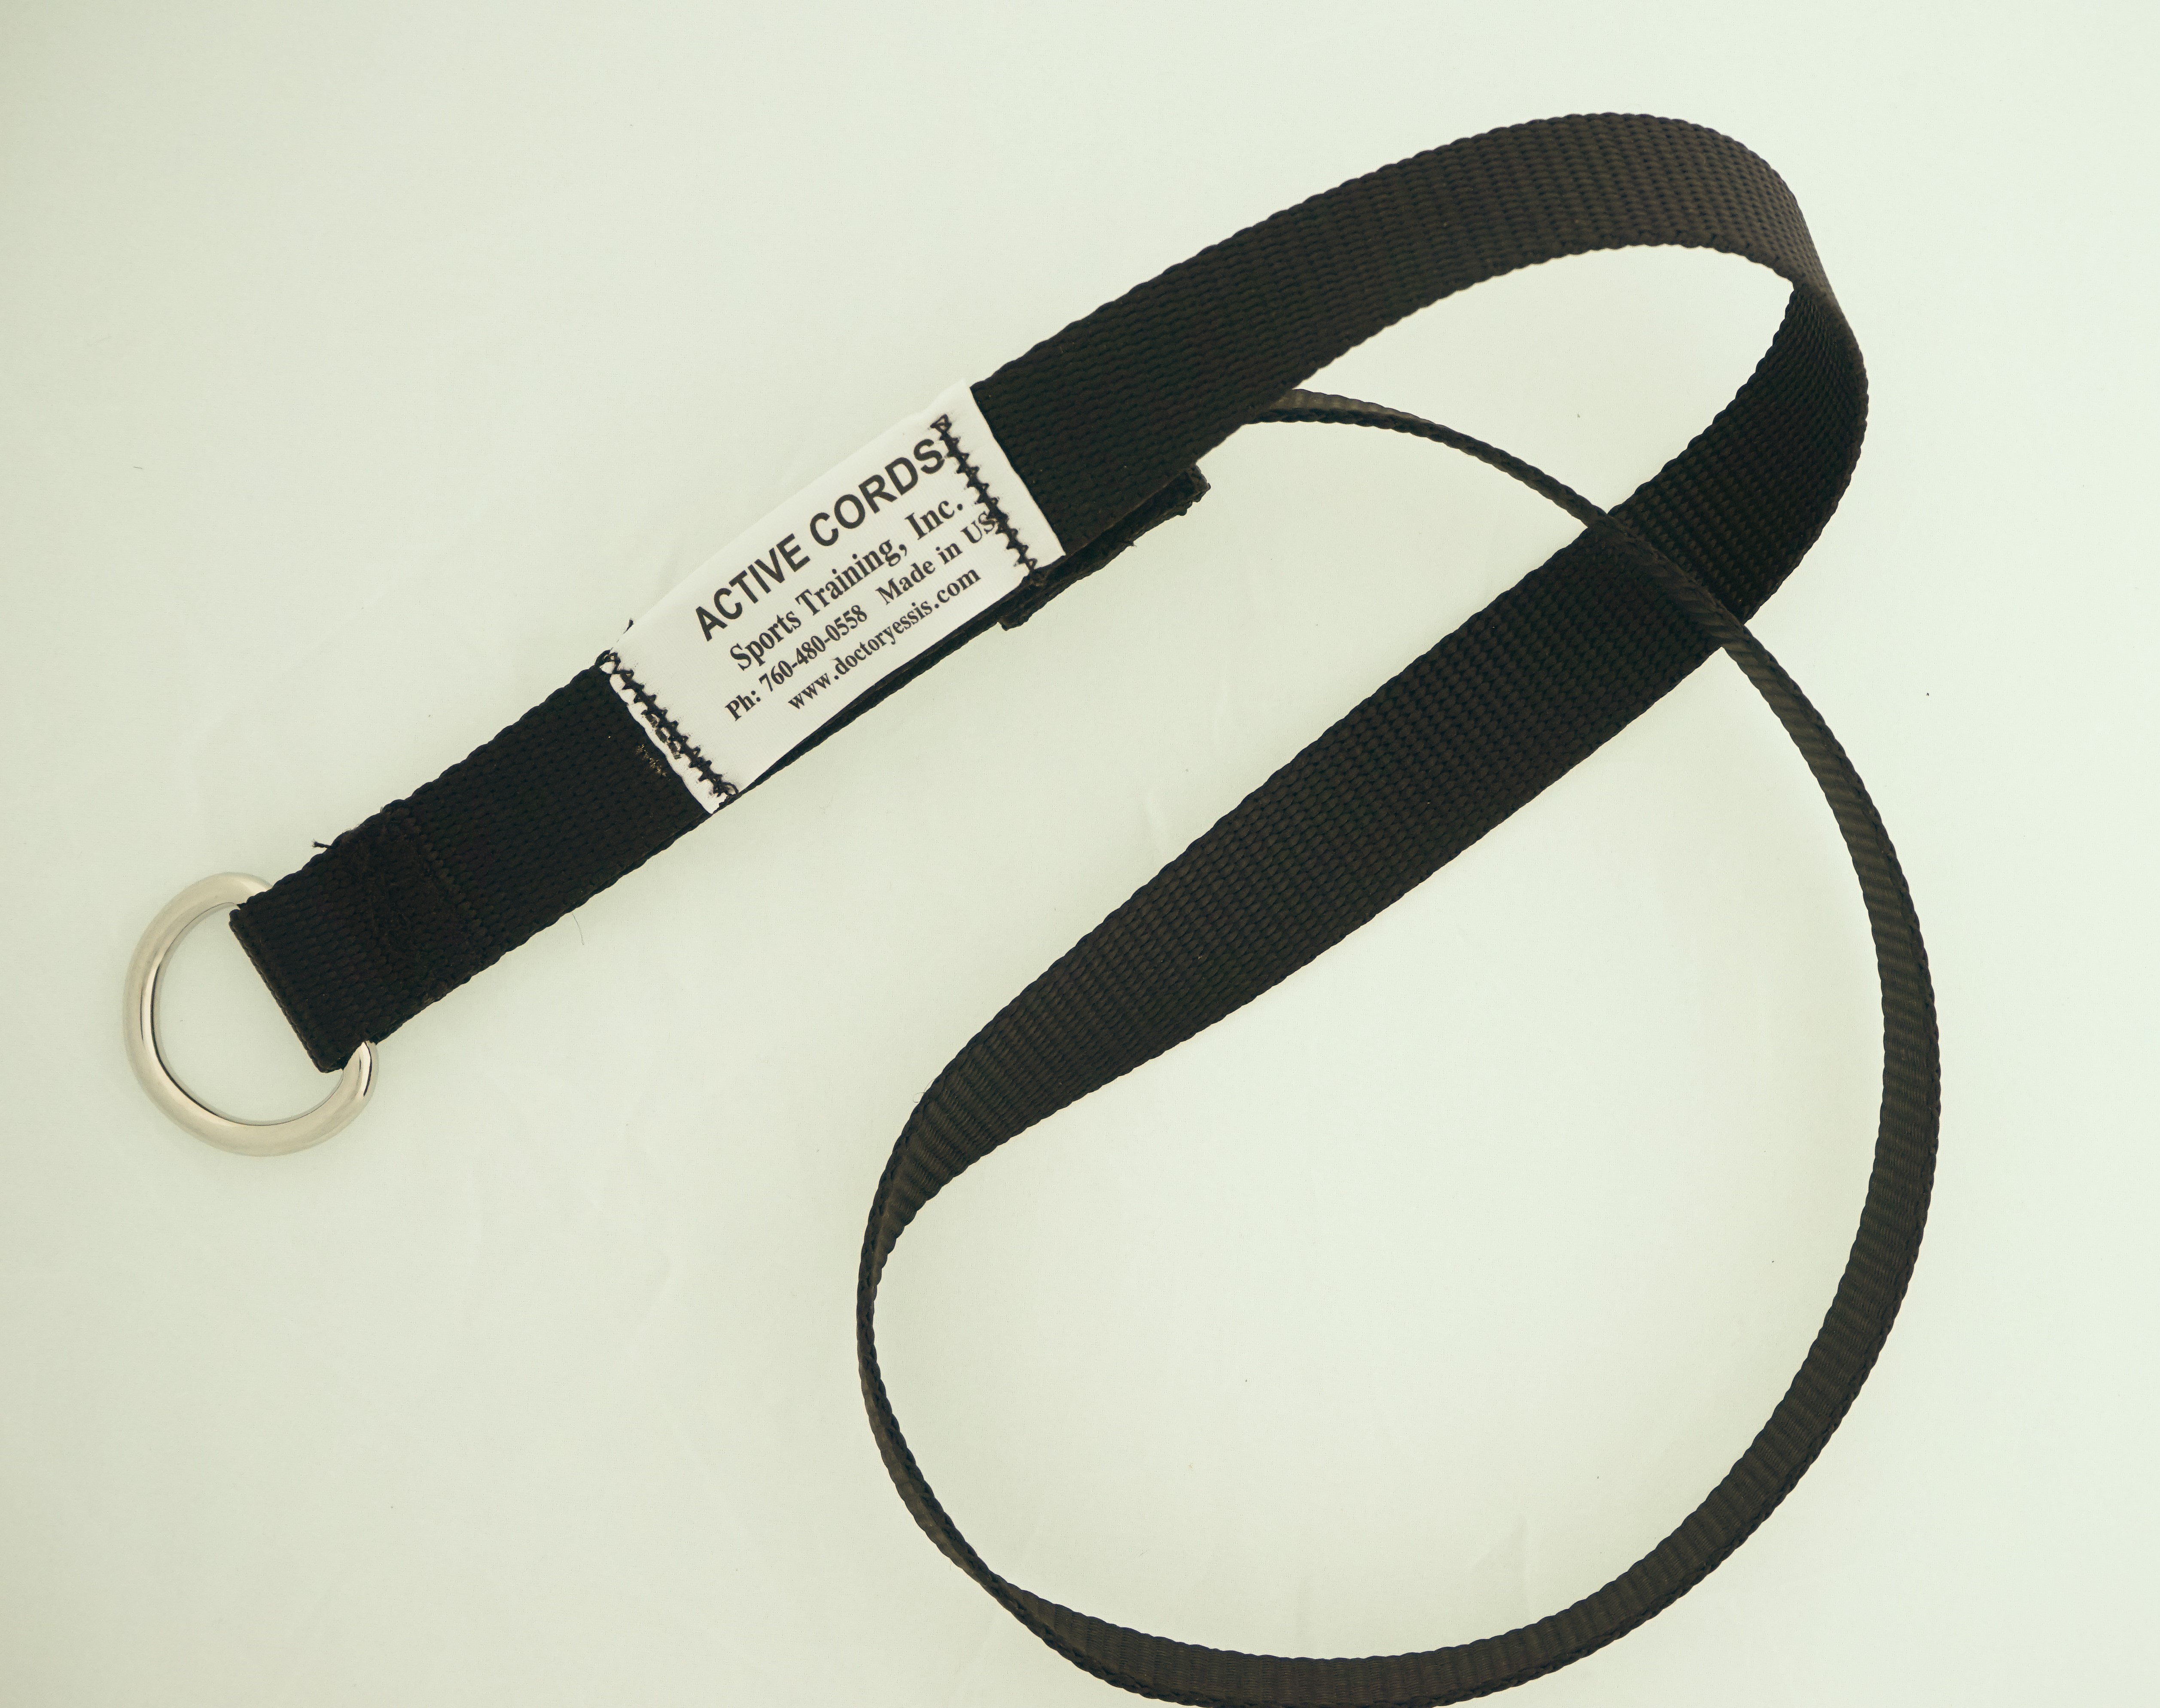 Active Cords Dual Attachment Strap